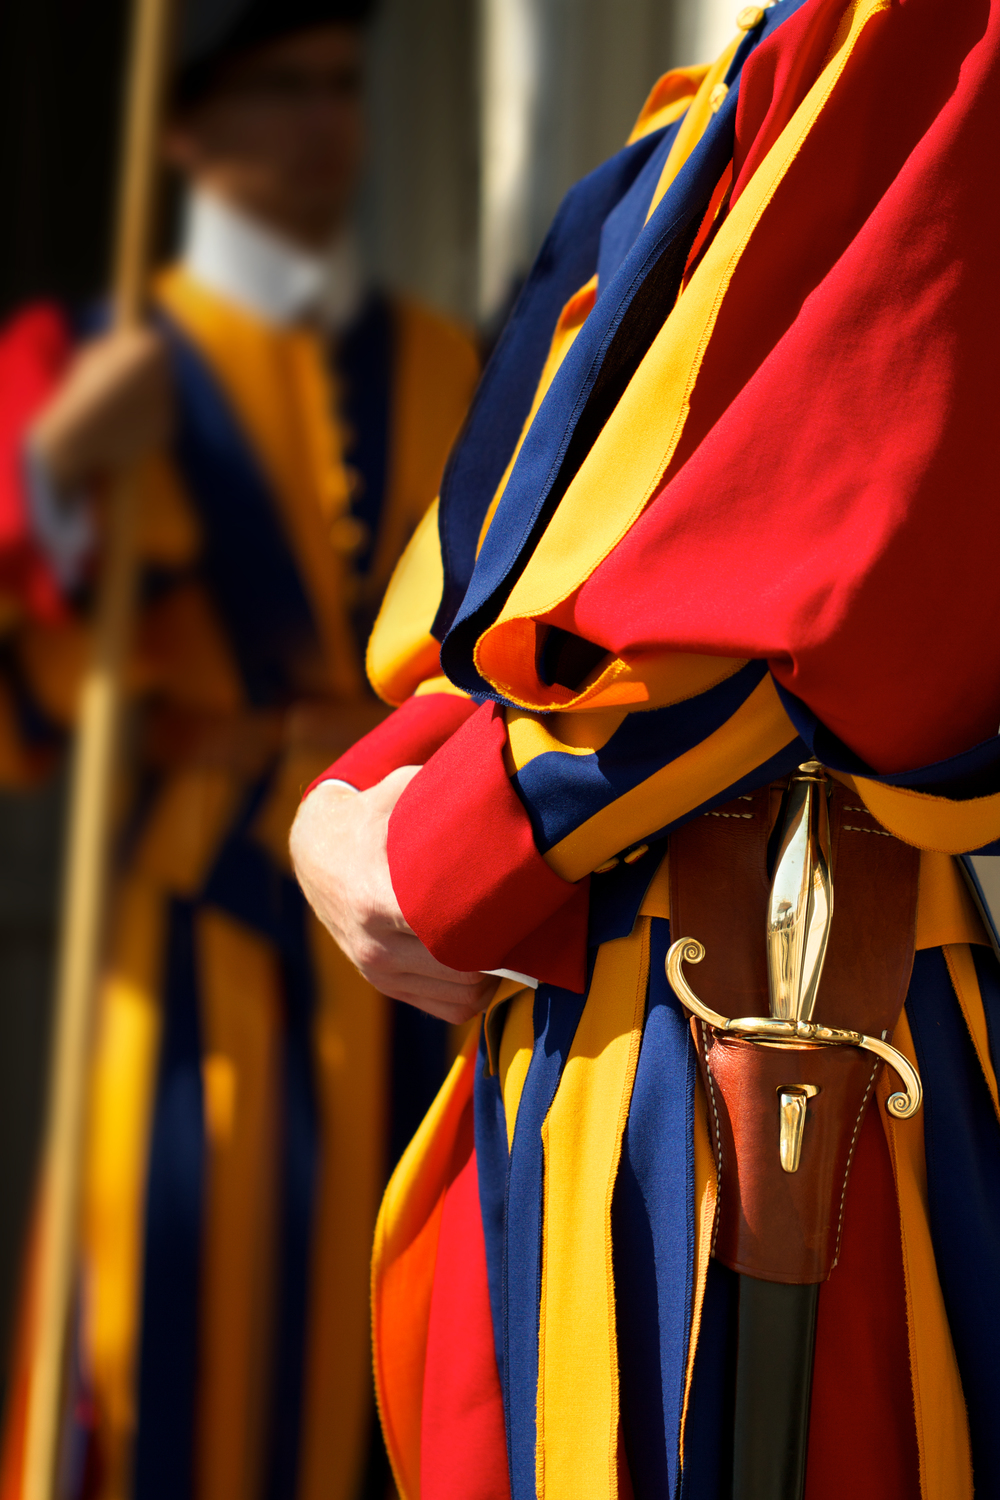 The fabulous uniforms of the Swiss Guard (designed by Michelangelo)